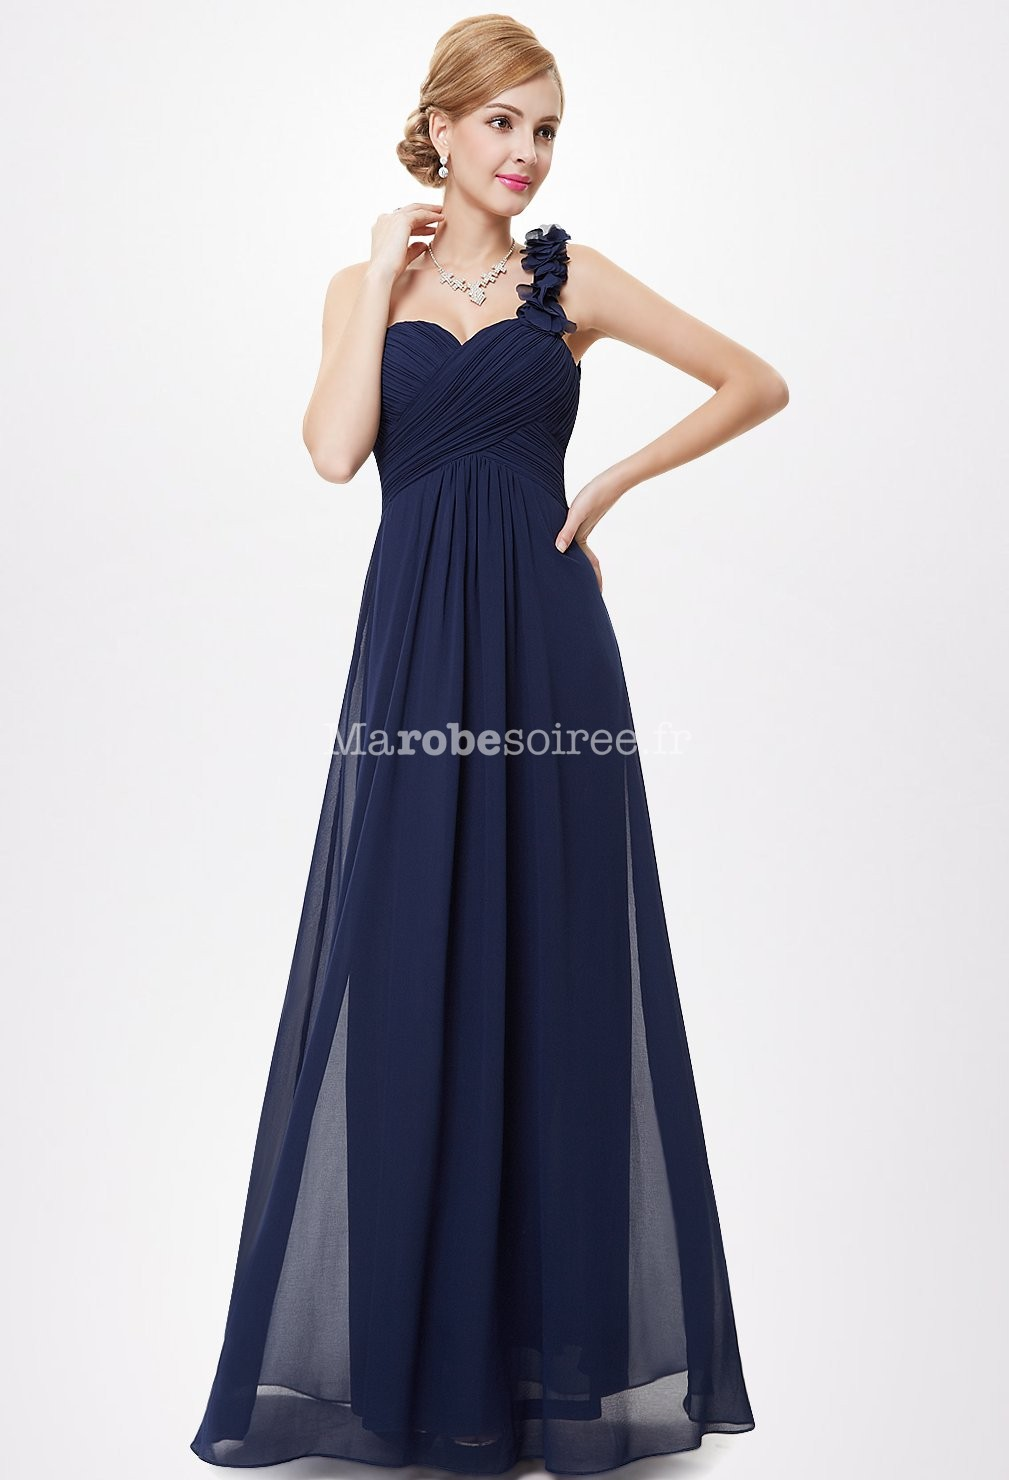 Top robes blog robe longue fluide bleue for Longue robe marine pour mariage